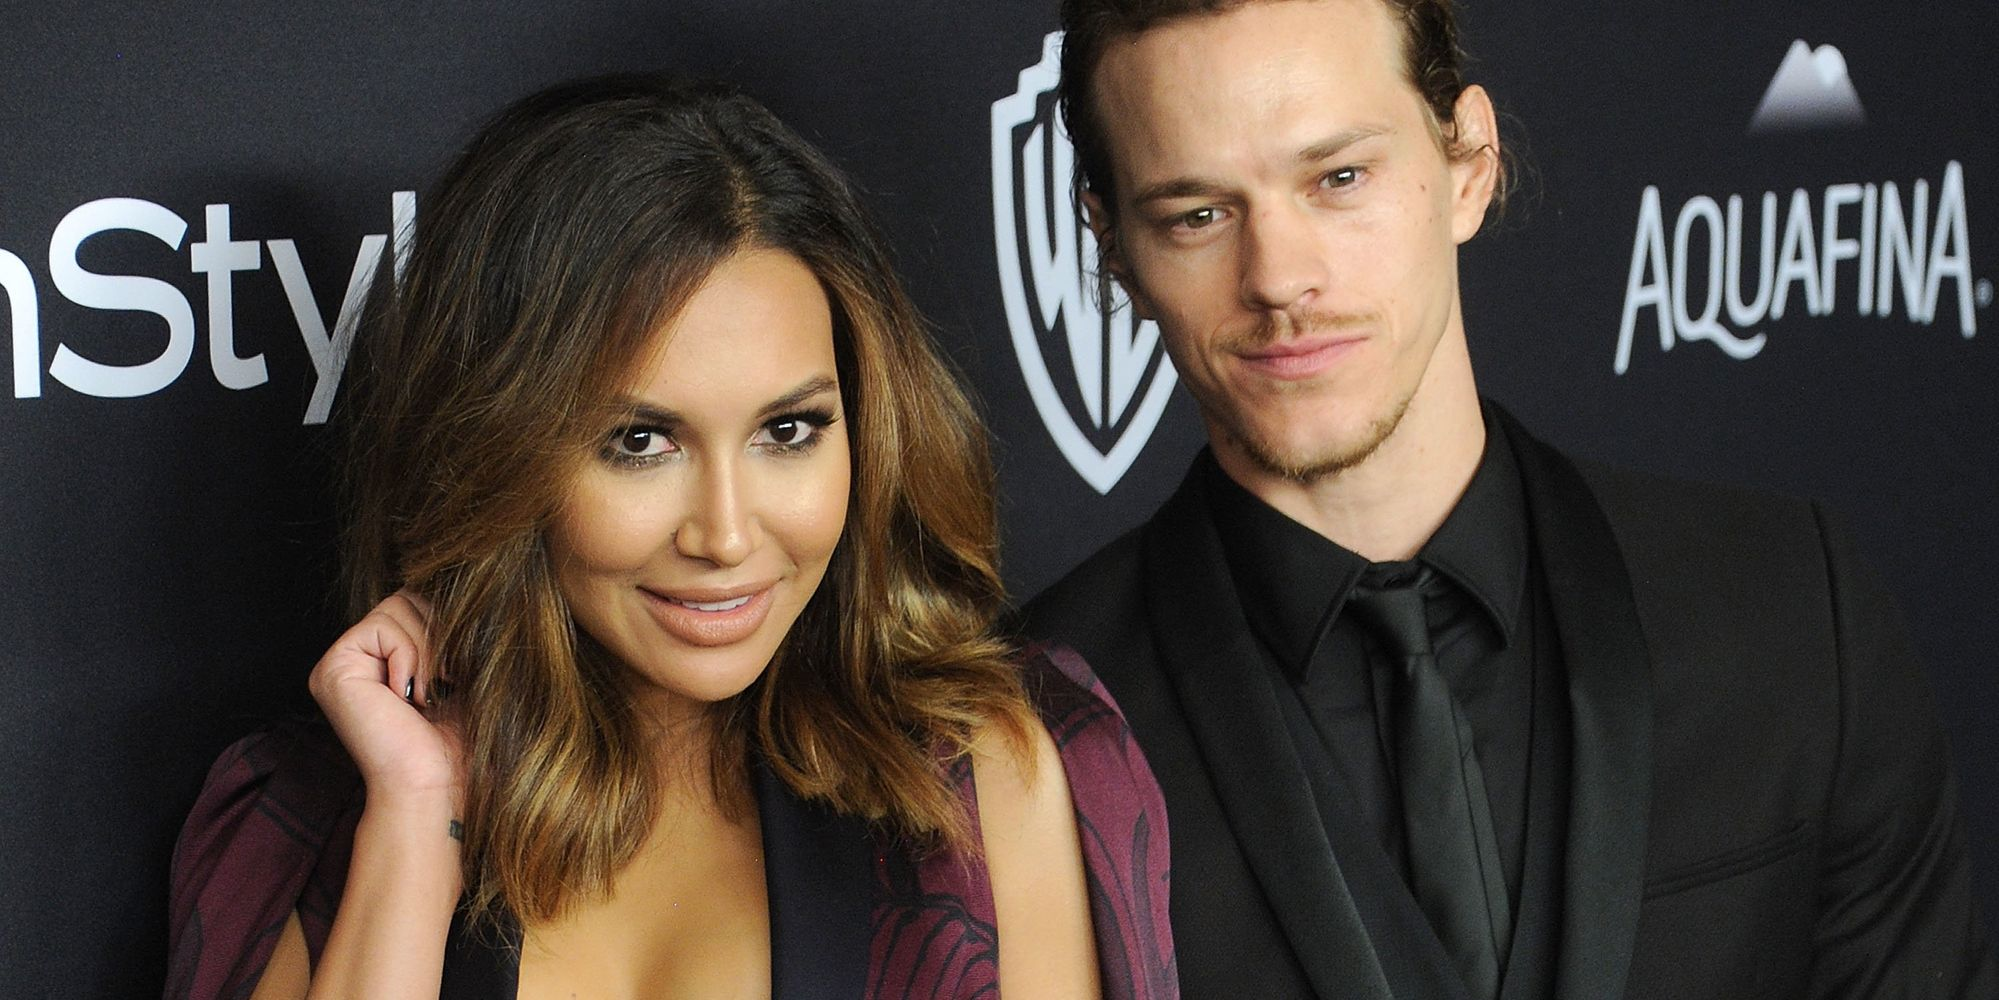 Celebrity Breakups  Pictures  Videos  Breaking News The Huffington Post